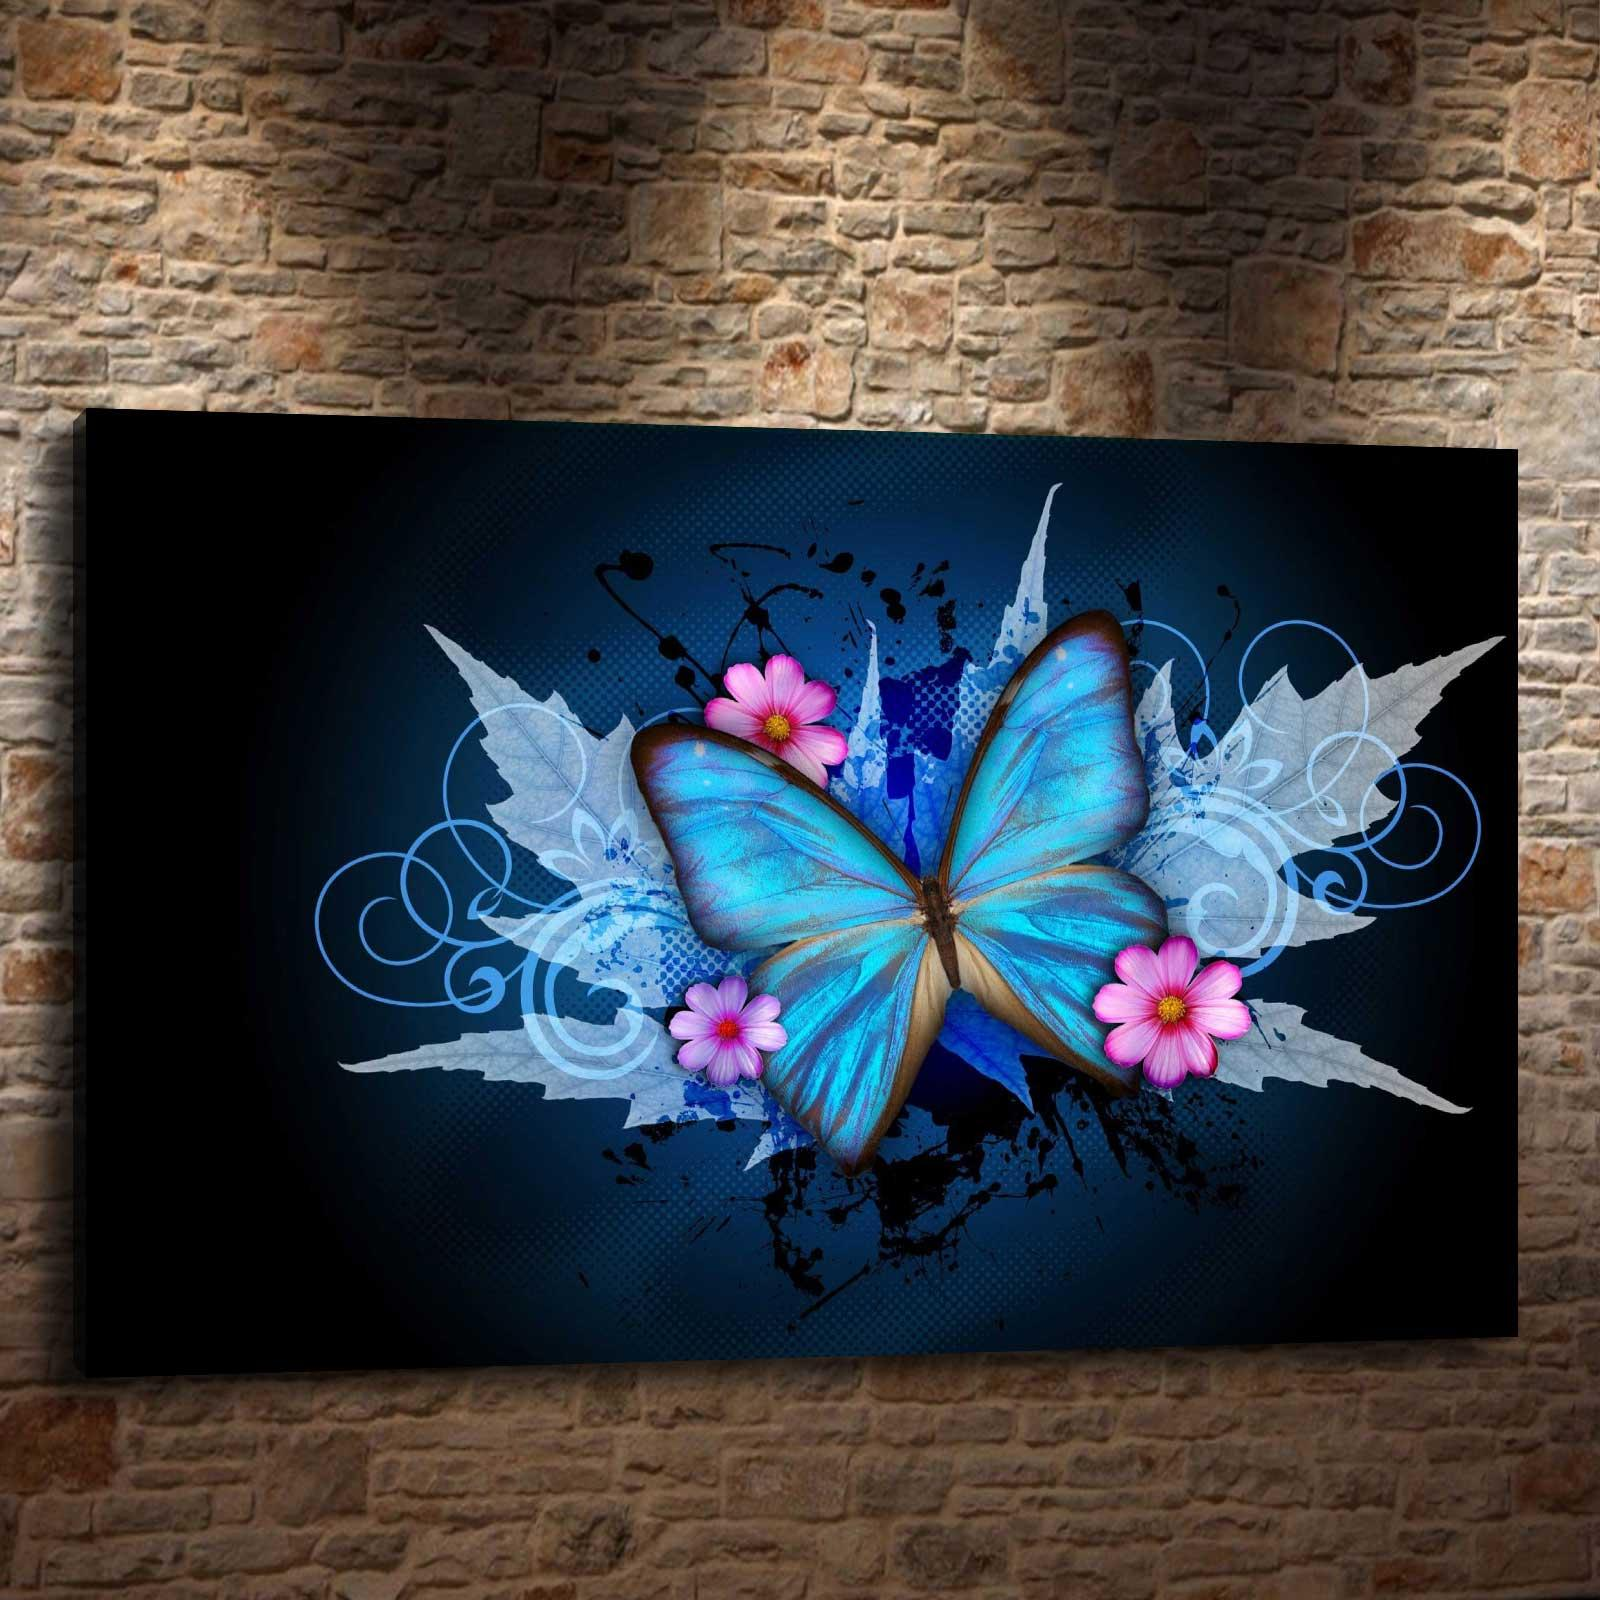 2018 Original New Home Decor Art Hd Print Abstract Oil Painting Wall ...